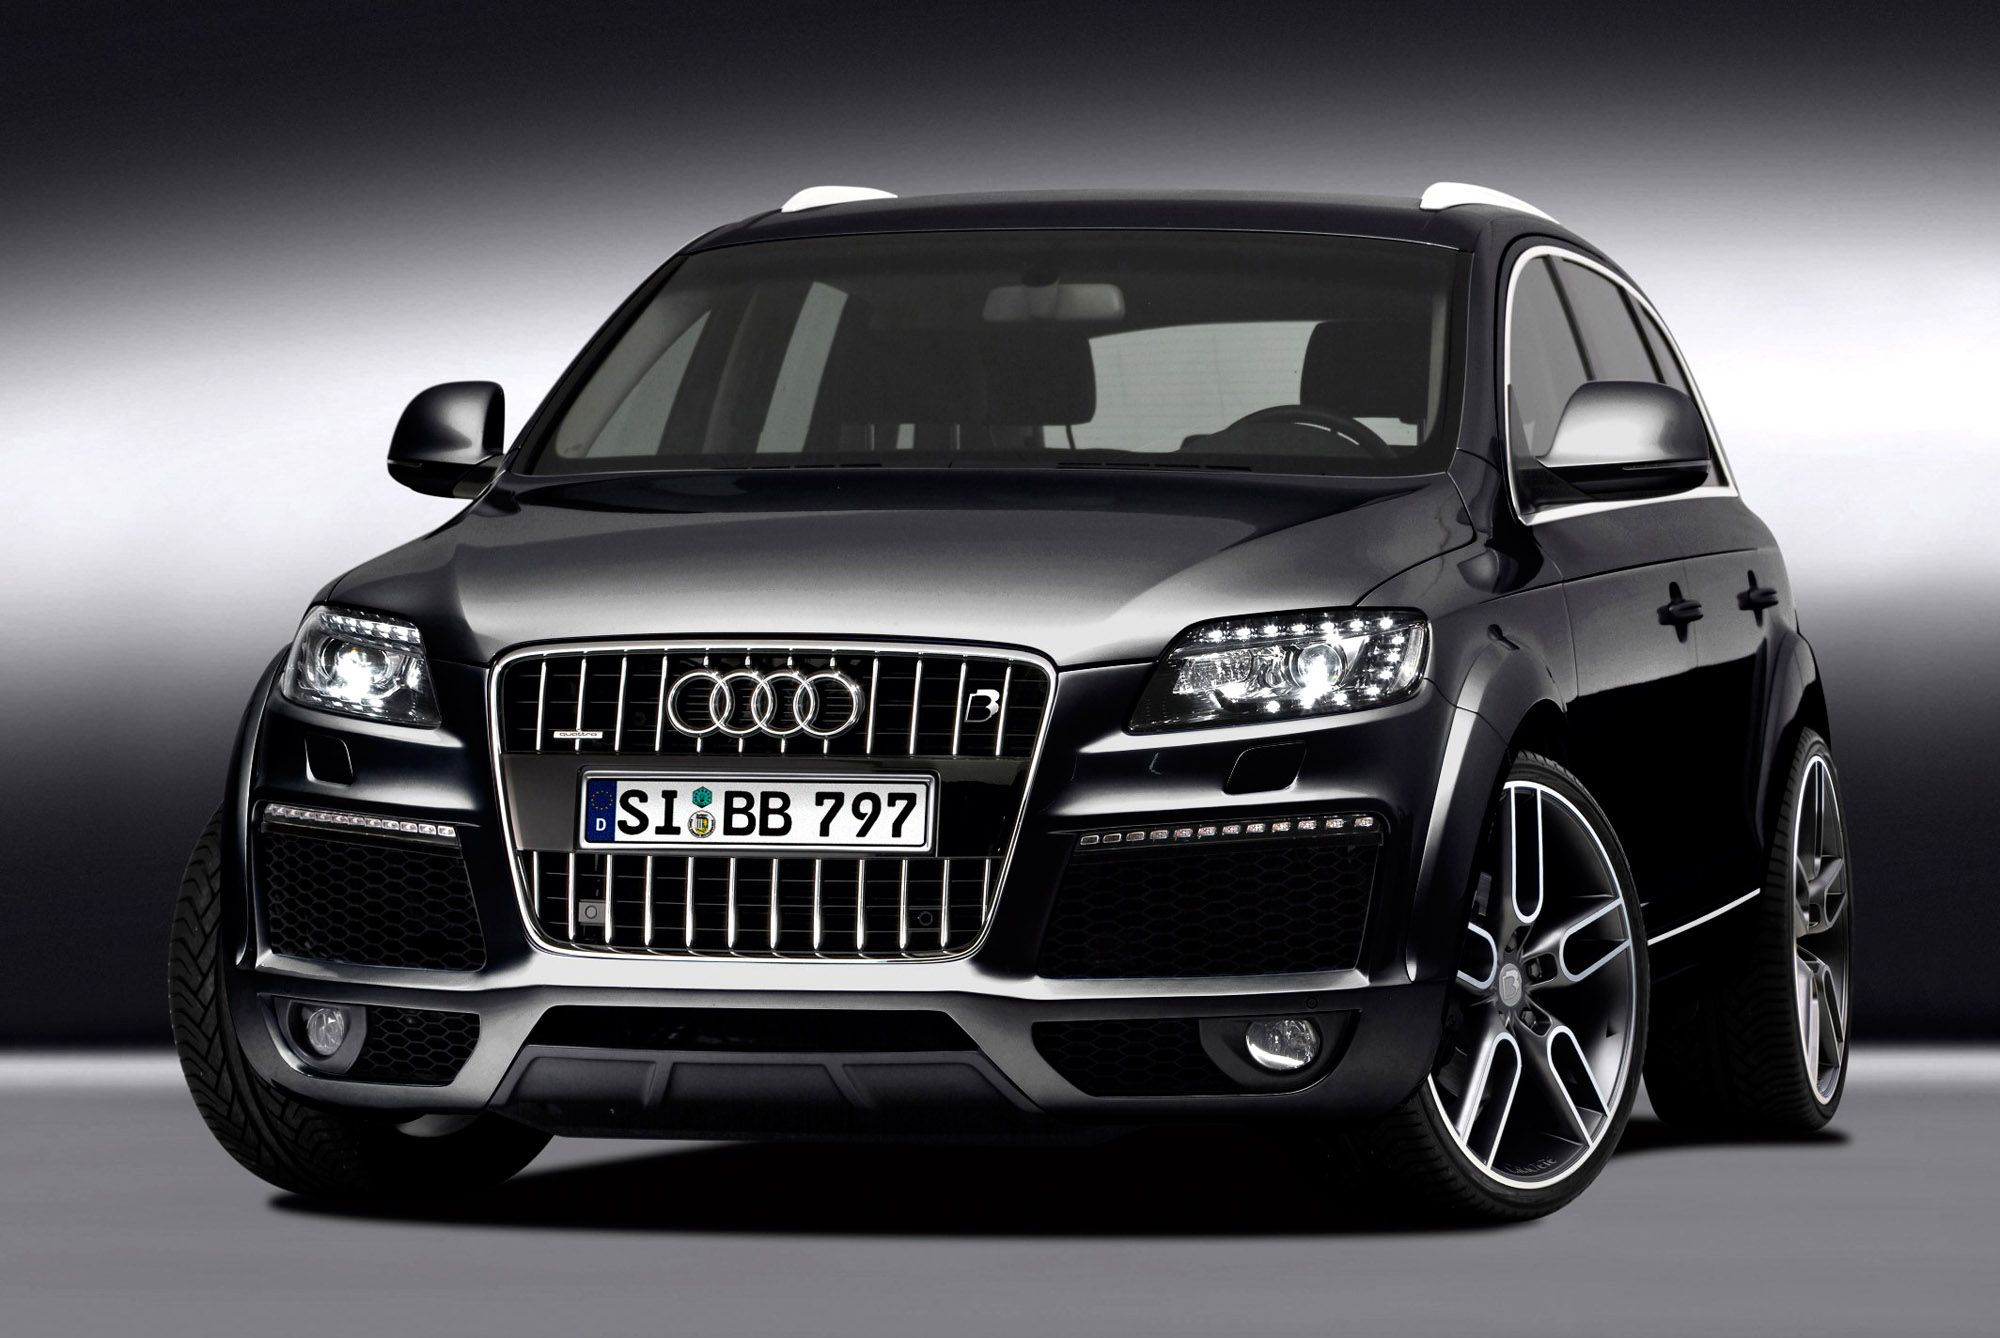 Audi q7 suv vossen wheels tuning cars wallpaper - 2012 Audi Your Kind Of Car